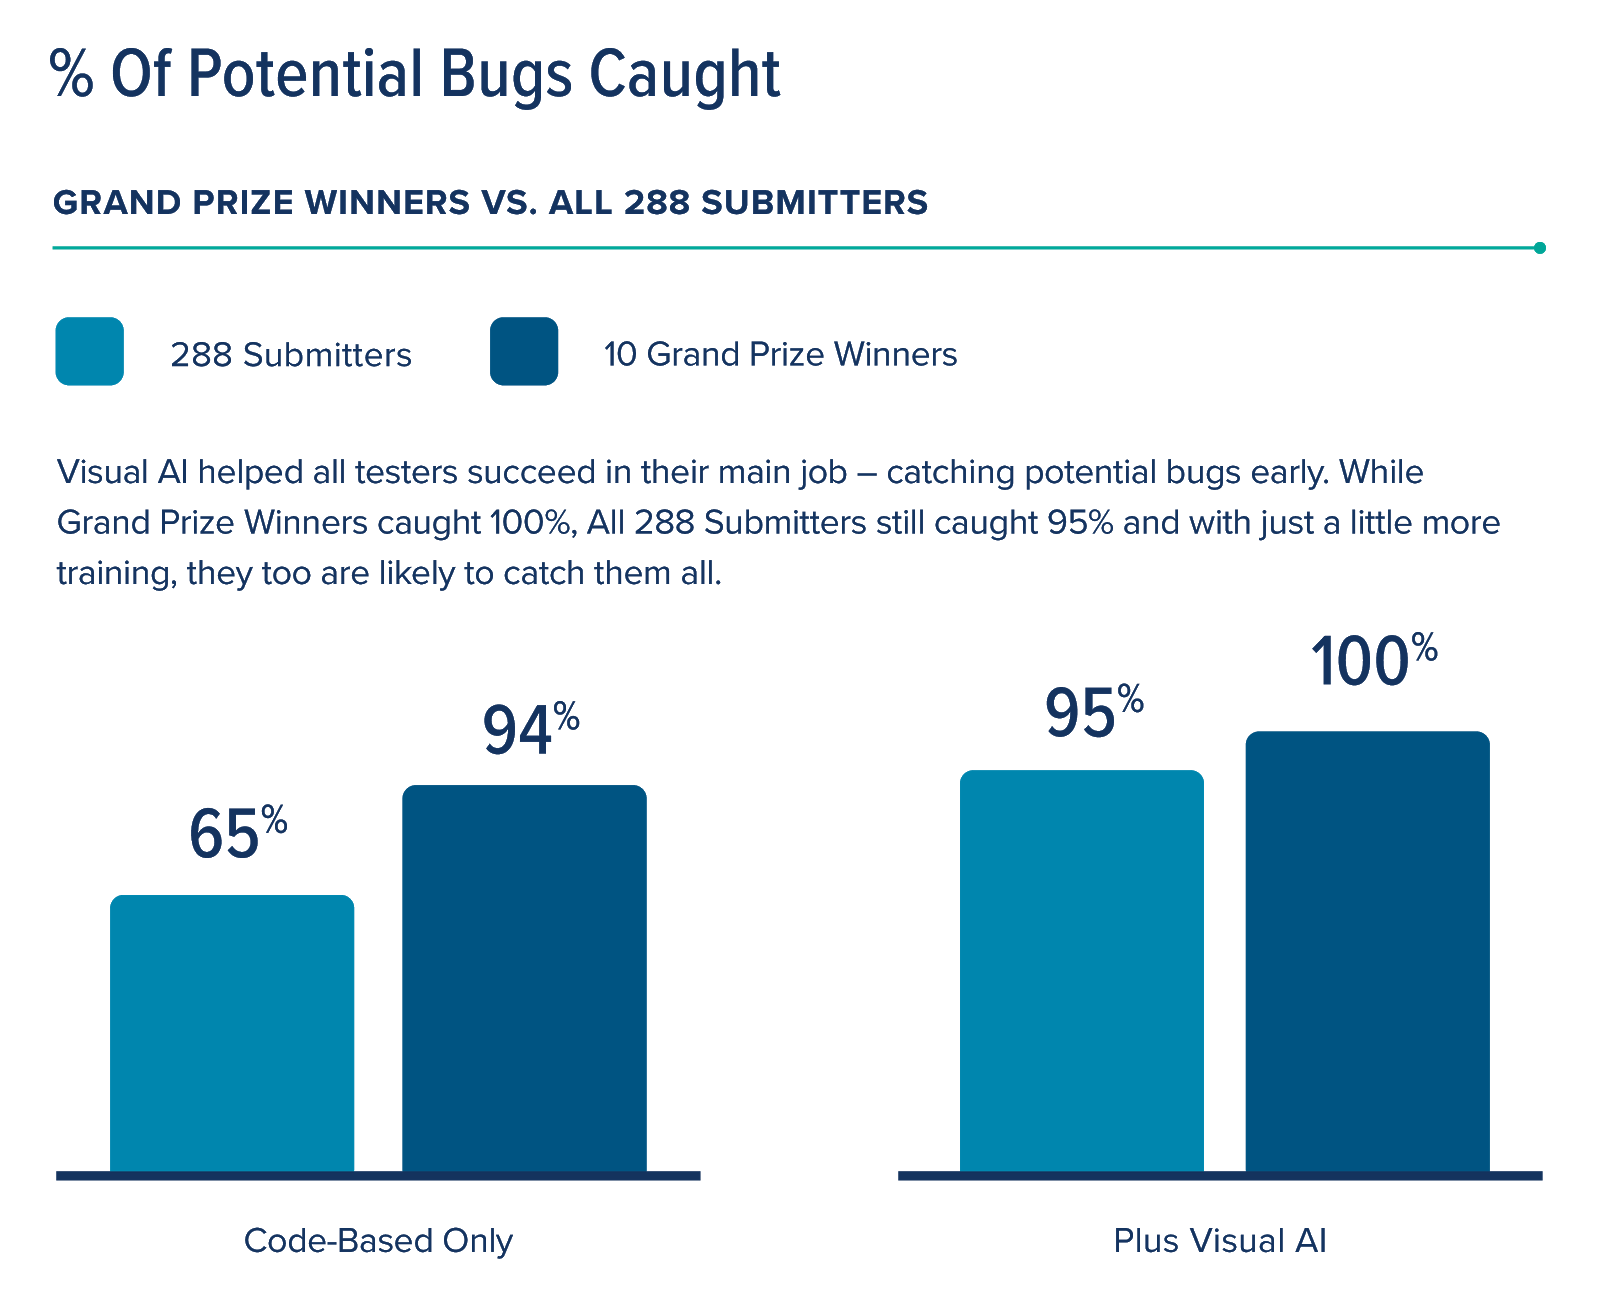 % of bugs caught